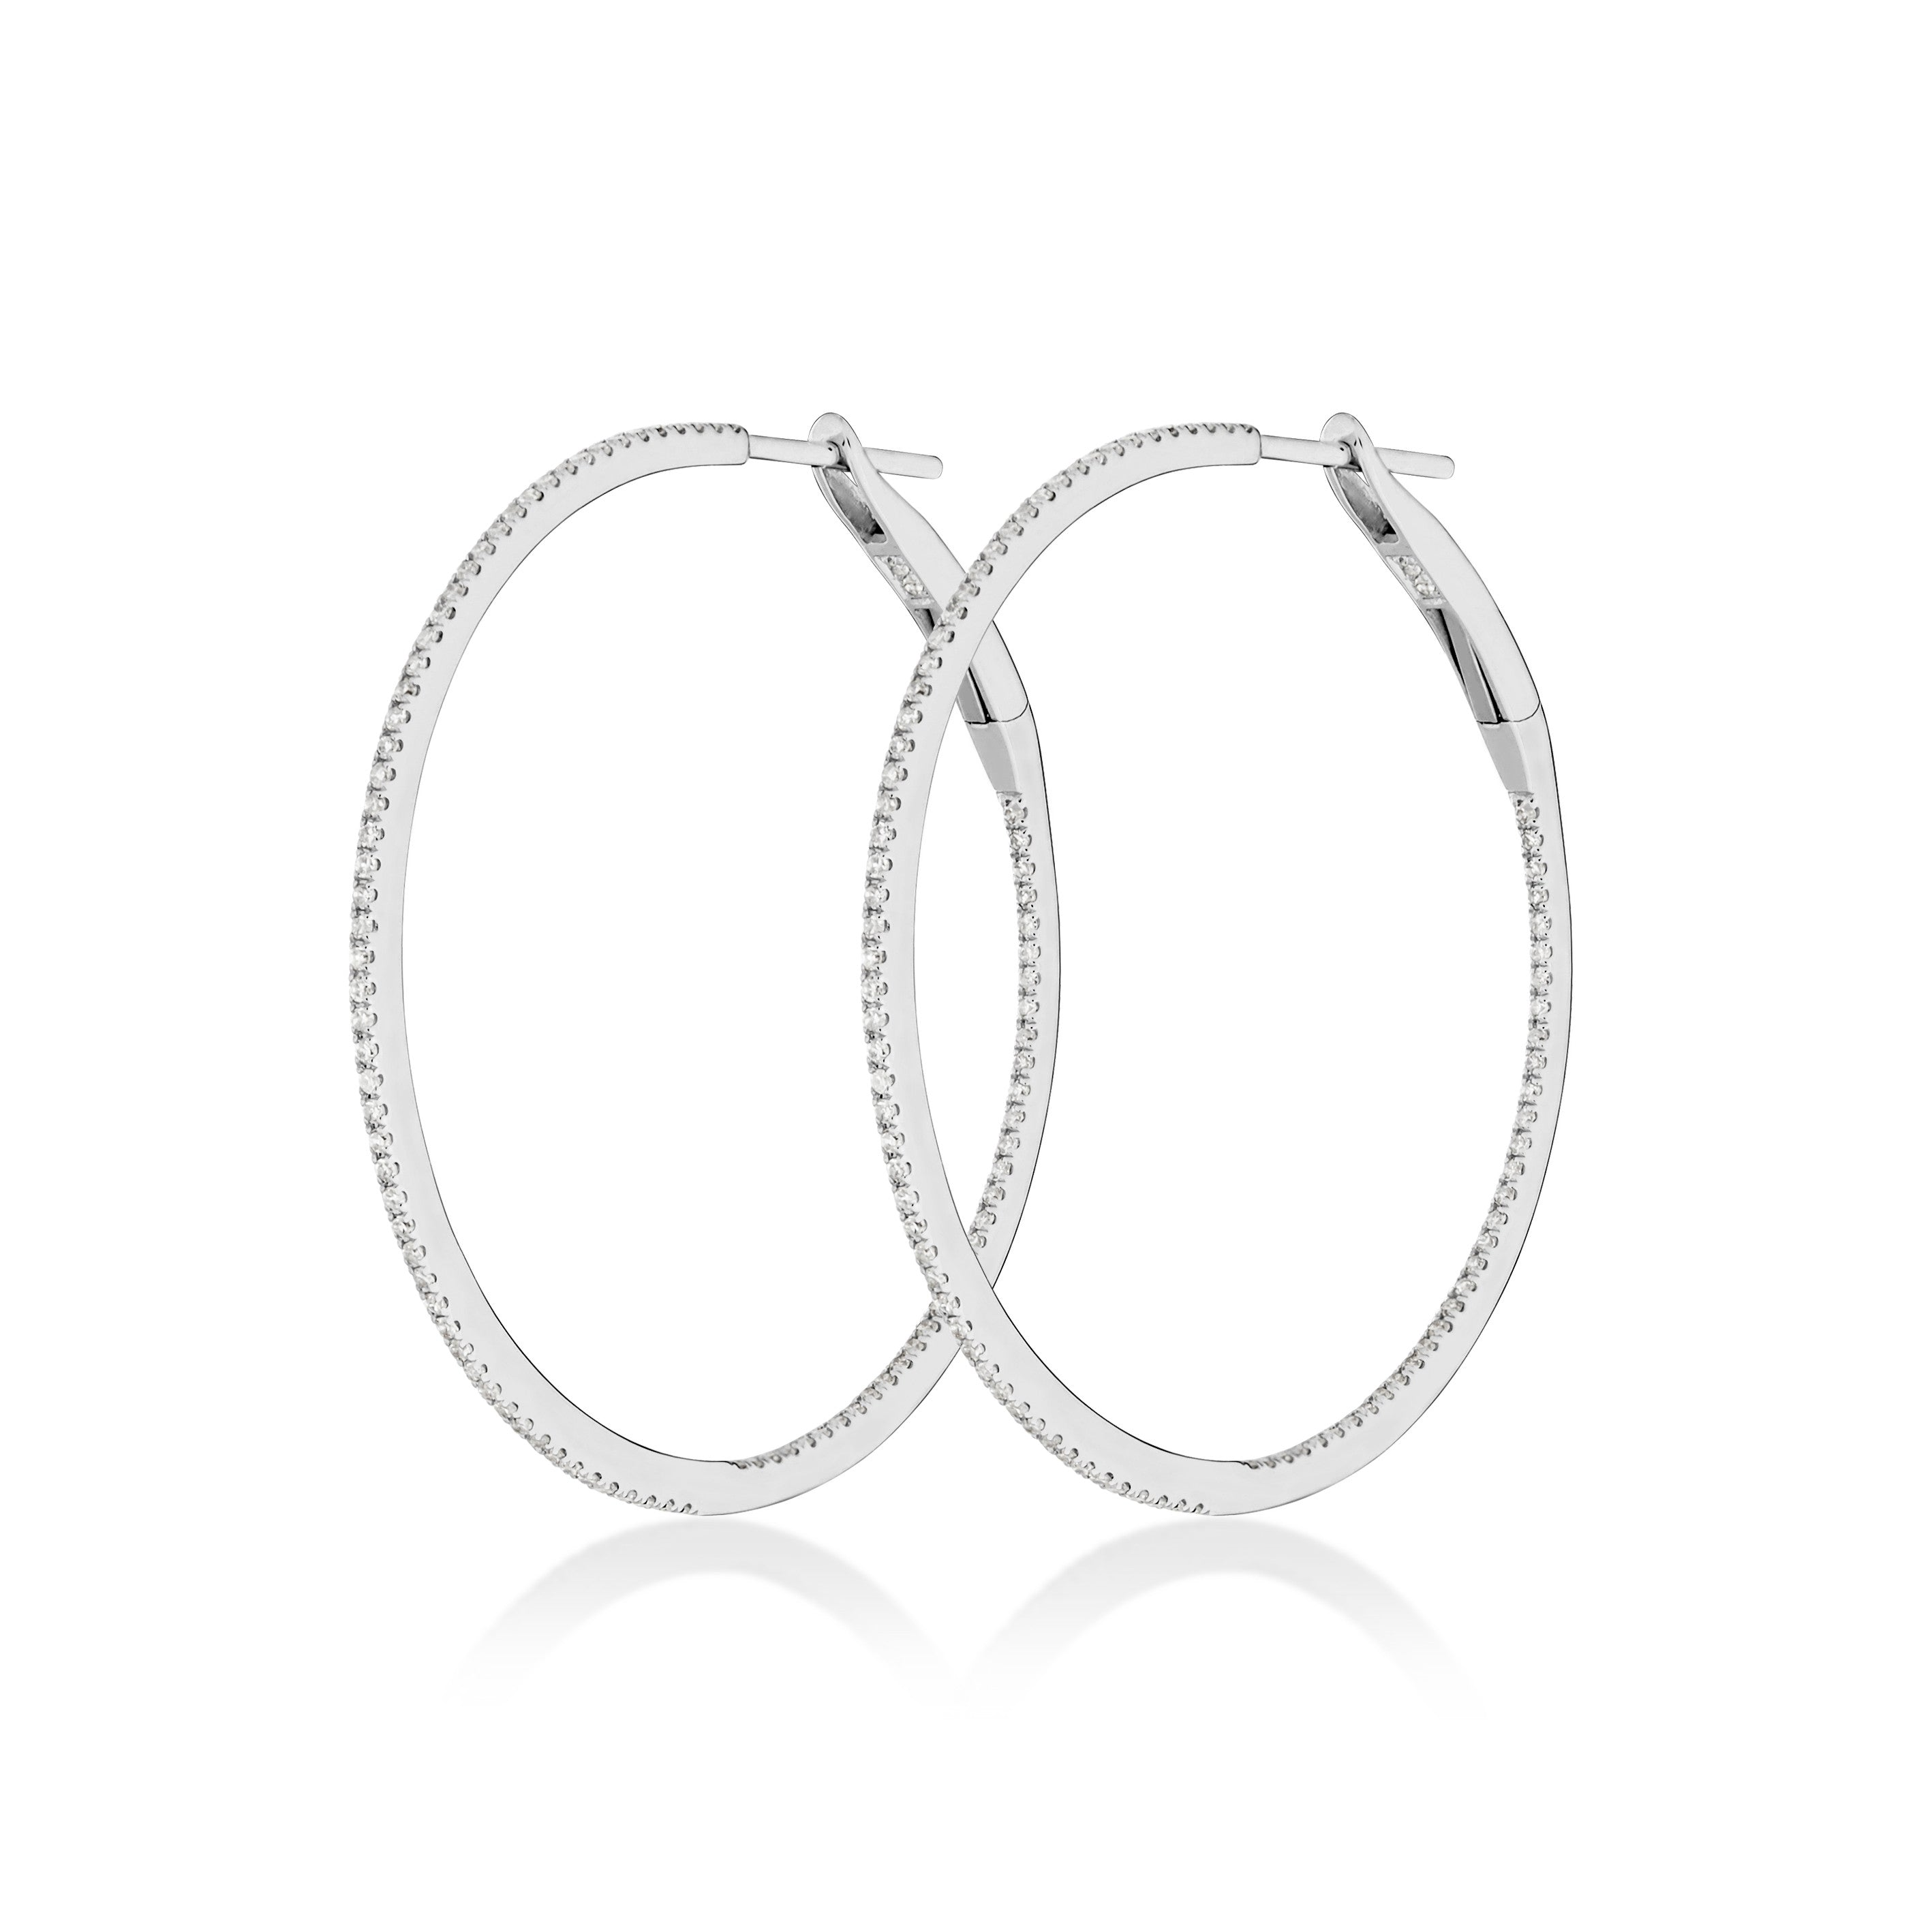 Medium Hoop Earrings , Earrings - Fine Jewelry, RoCHIC, RoCHIC Fine Jewelry